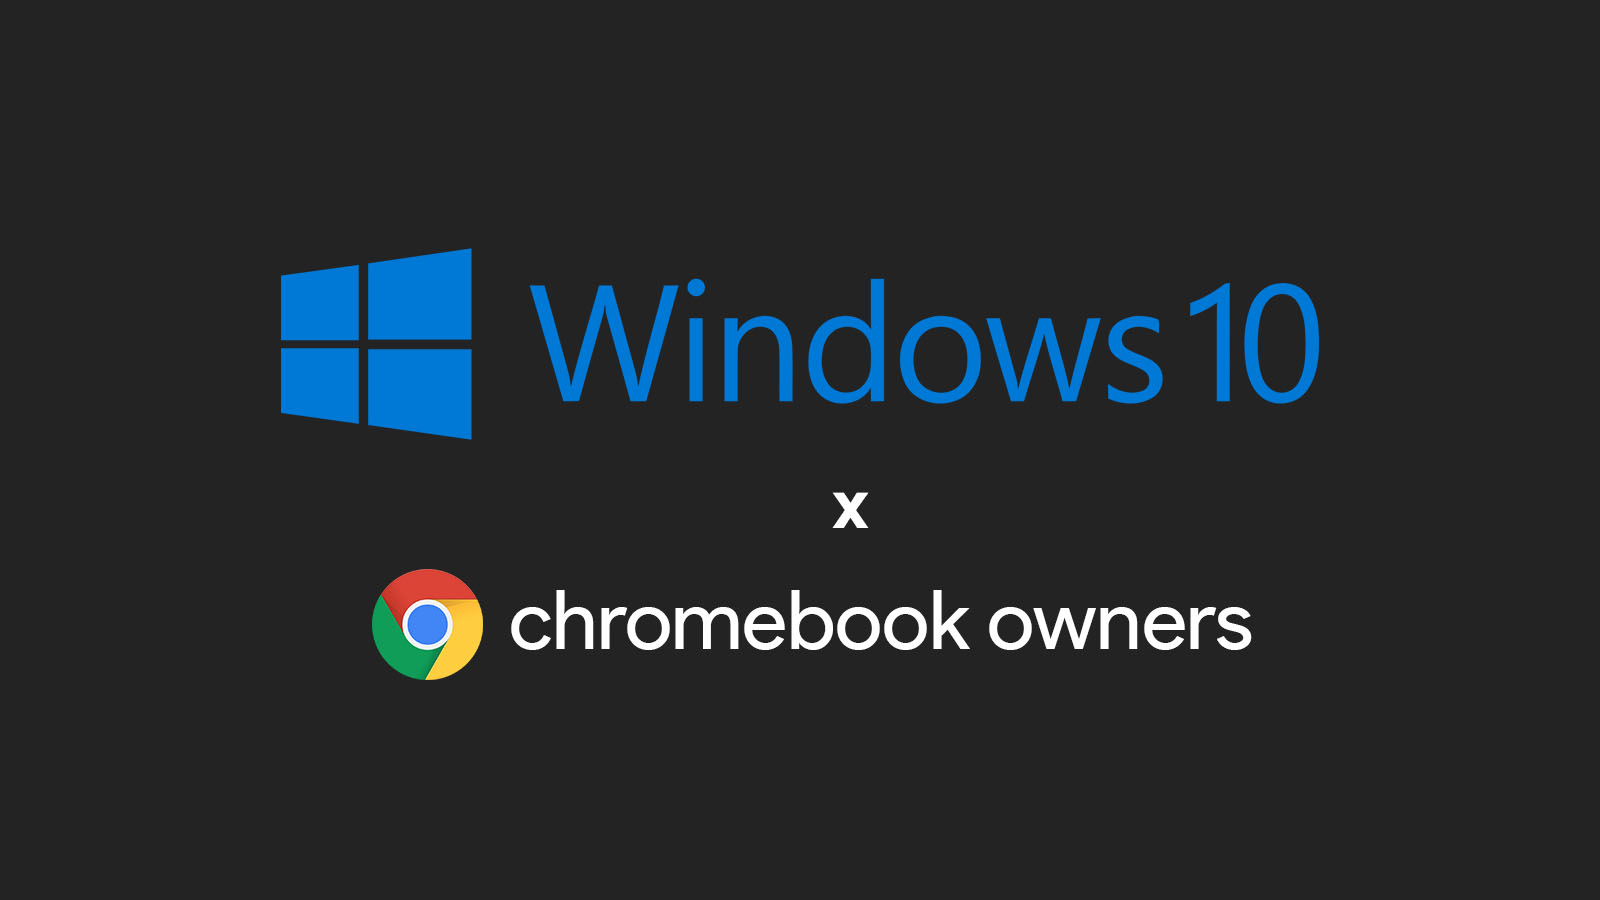 A comprehensive guide for making Windows 10 feel more like your Chromebook